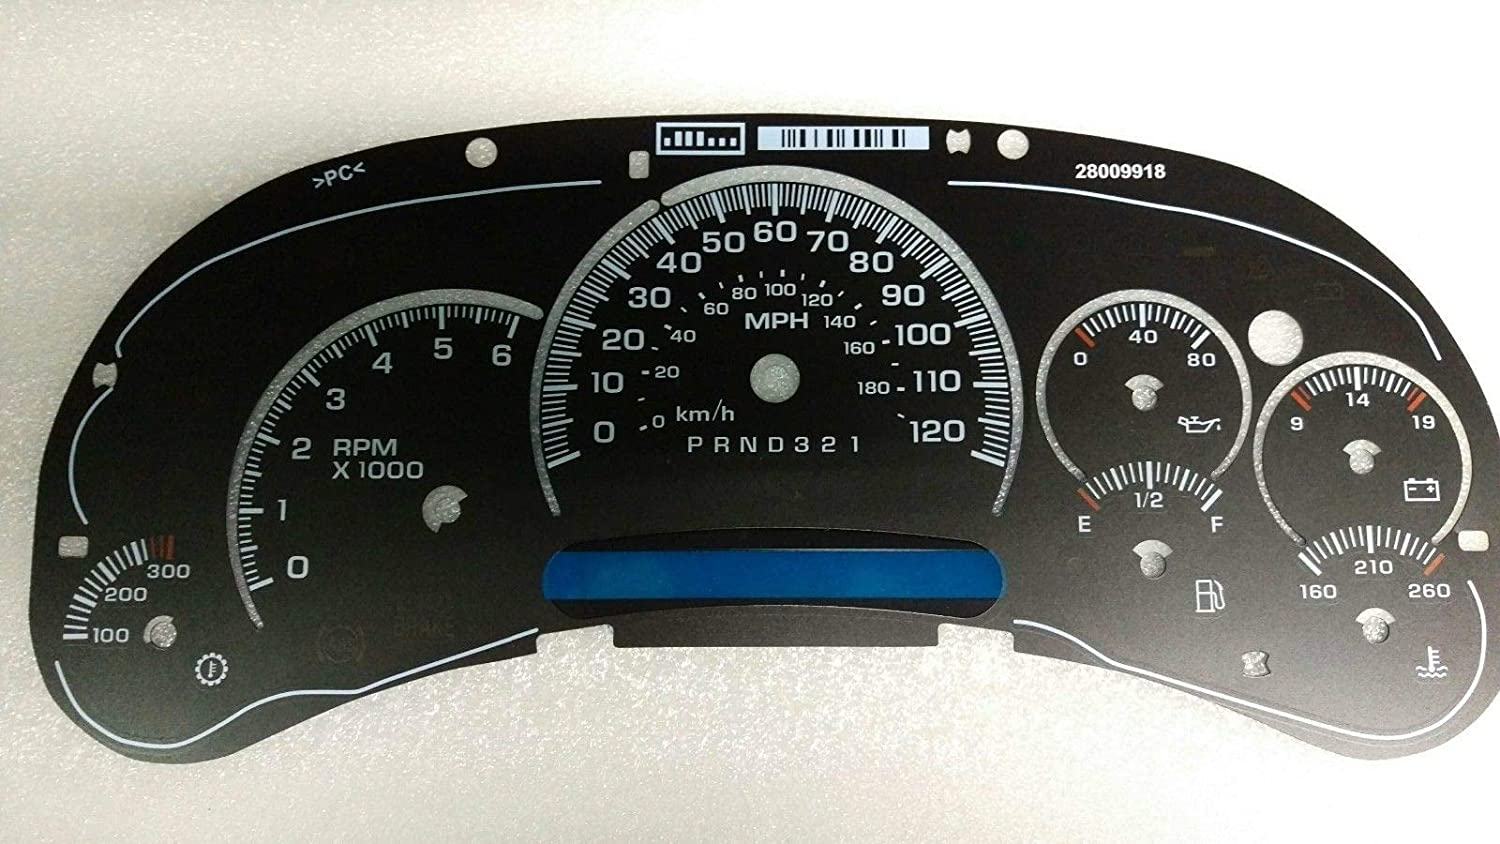 7 Gauges Tanin Auto Electronix Custom Black Gauge Face Overlay 2006-2007 GMC /& Chevy Truck Instrument Cluster Speedometer